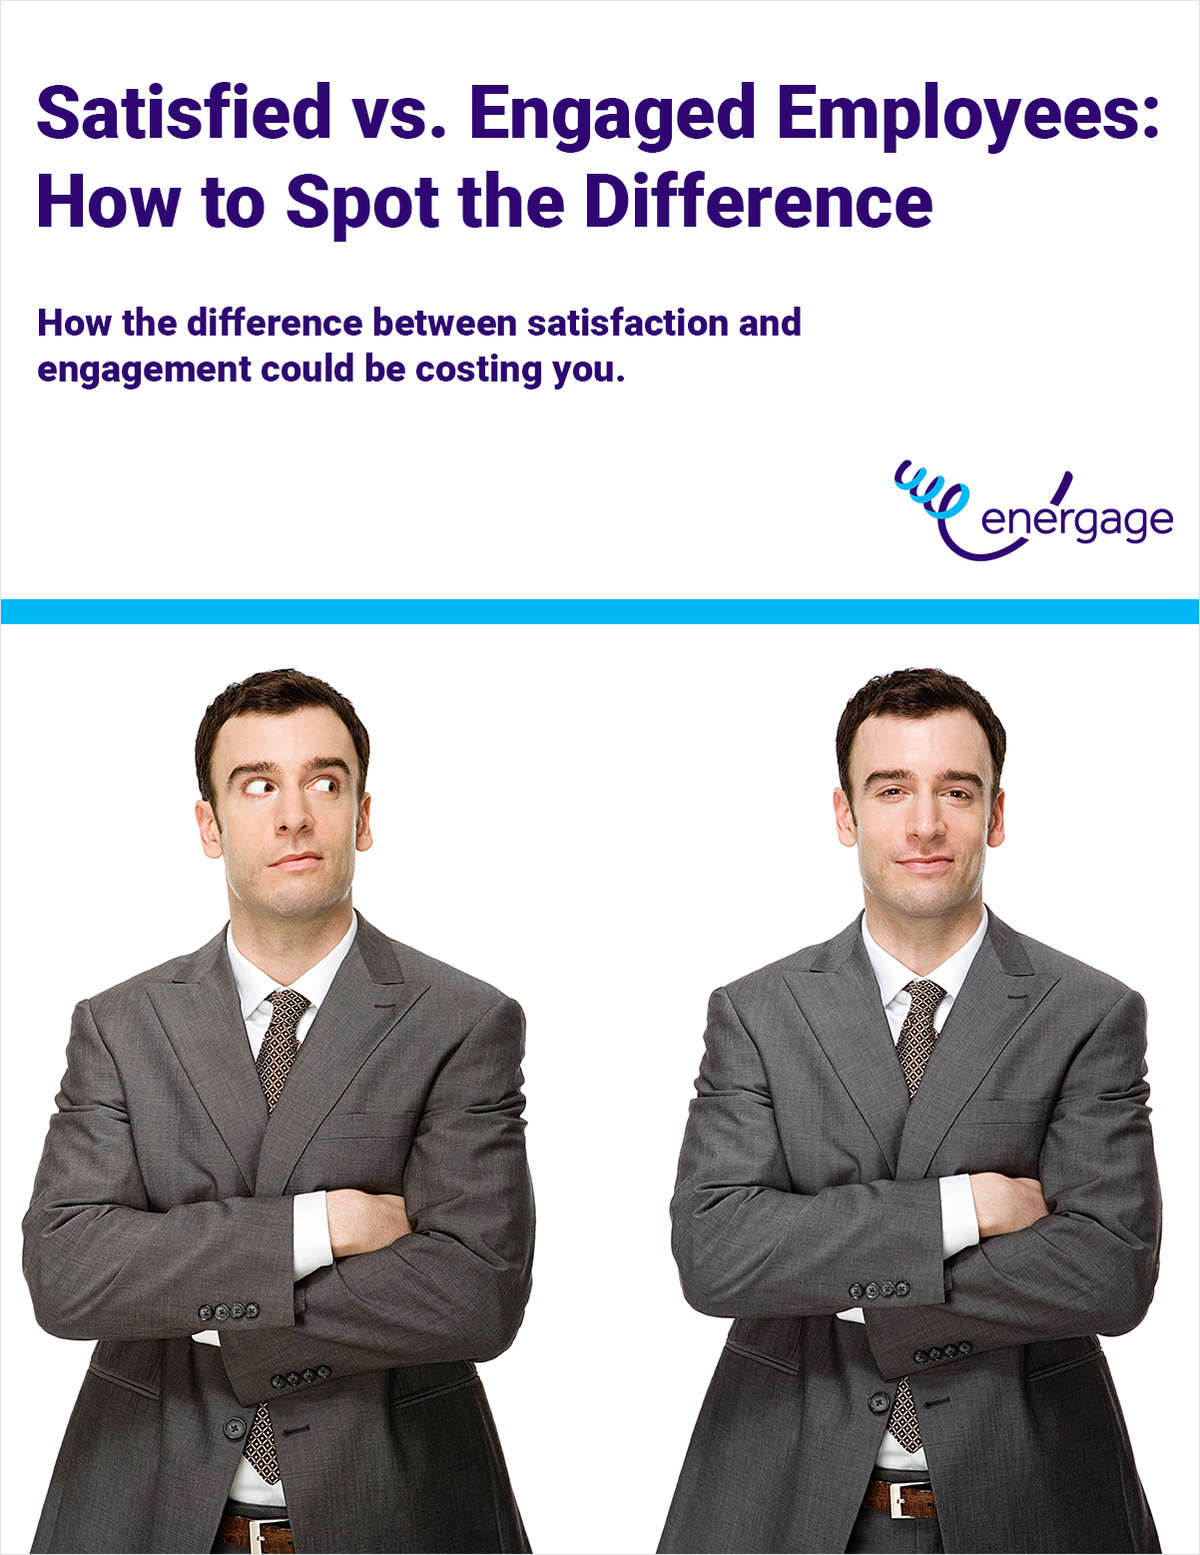 Satisfied vs. Engaged Employees: How to Spot the Difference